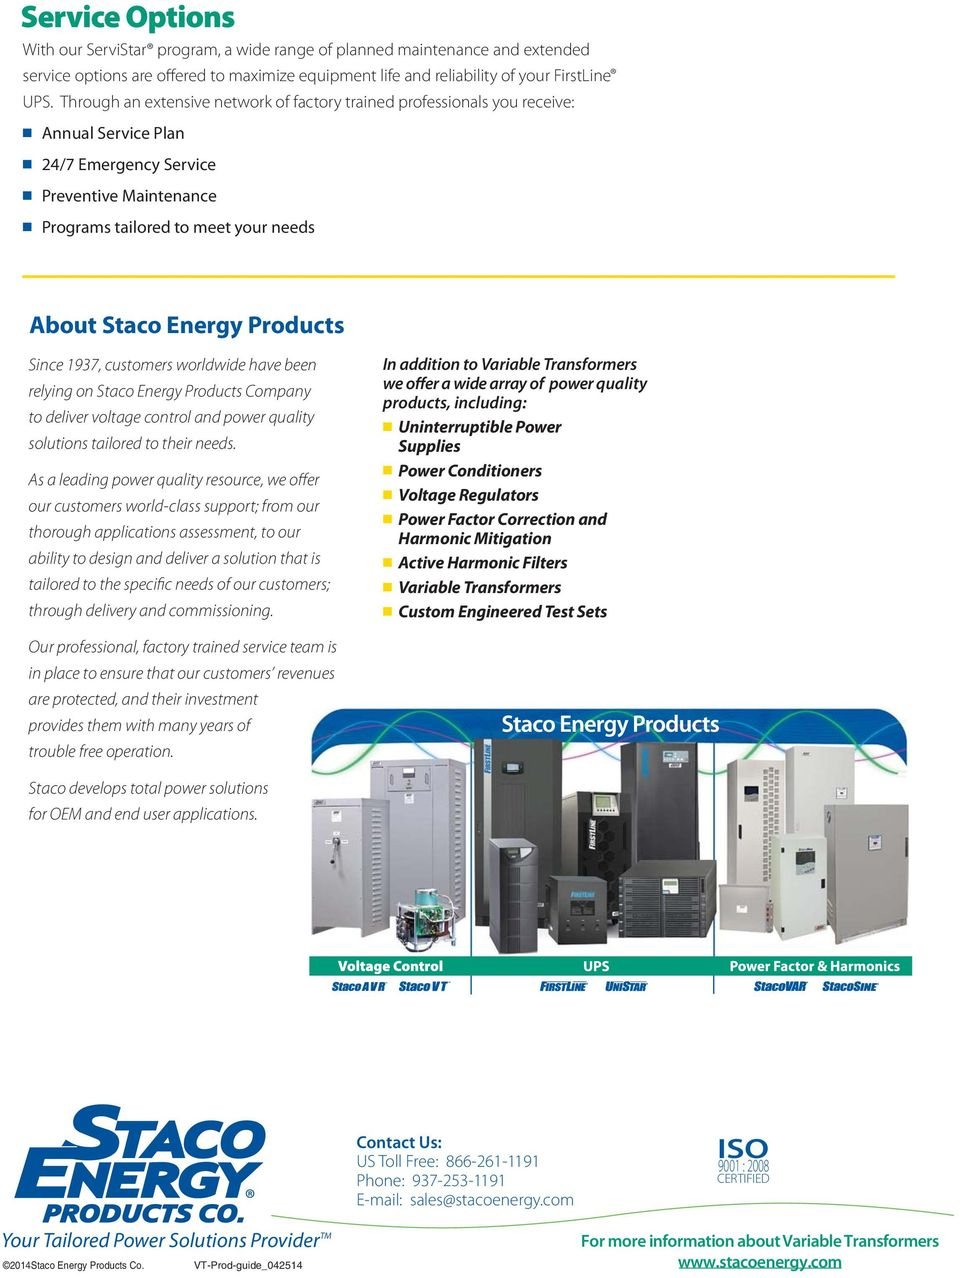 Products Since 1937, customers worldwide have been relying on Staco Energy Products Company to deliver voltage control and power quality solutions tailored to their needs.